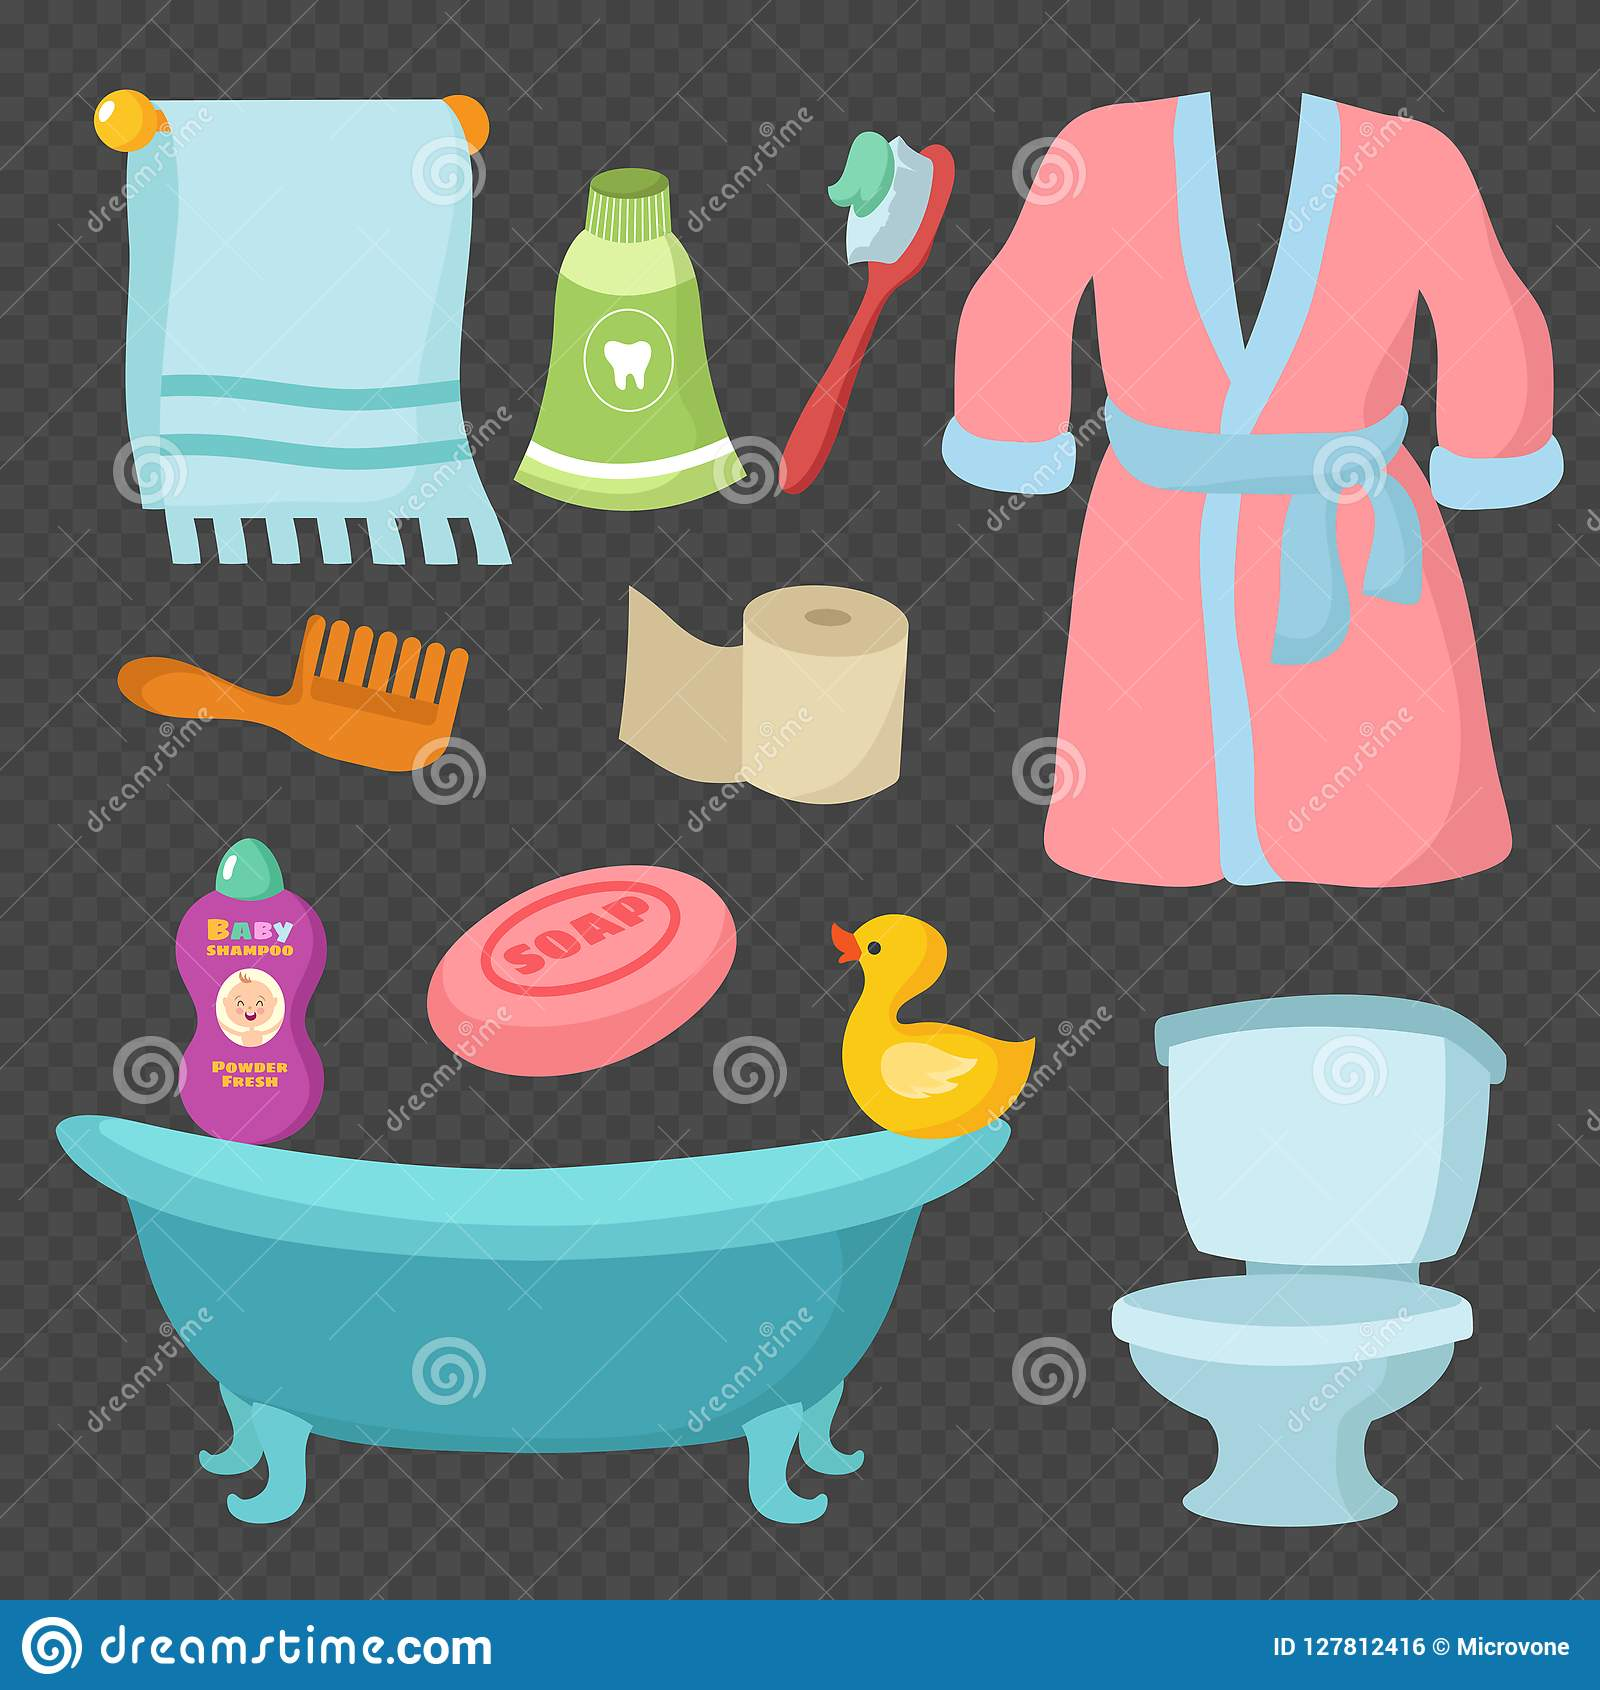 Cartoon Bathroom Accessories Set Vocabulary Vector